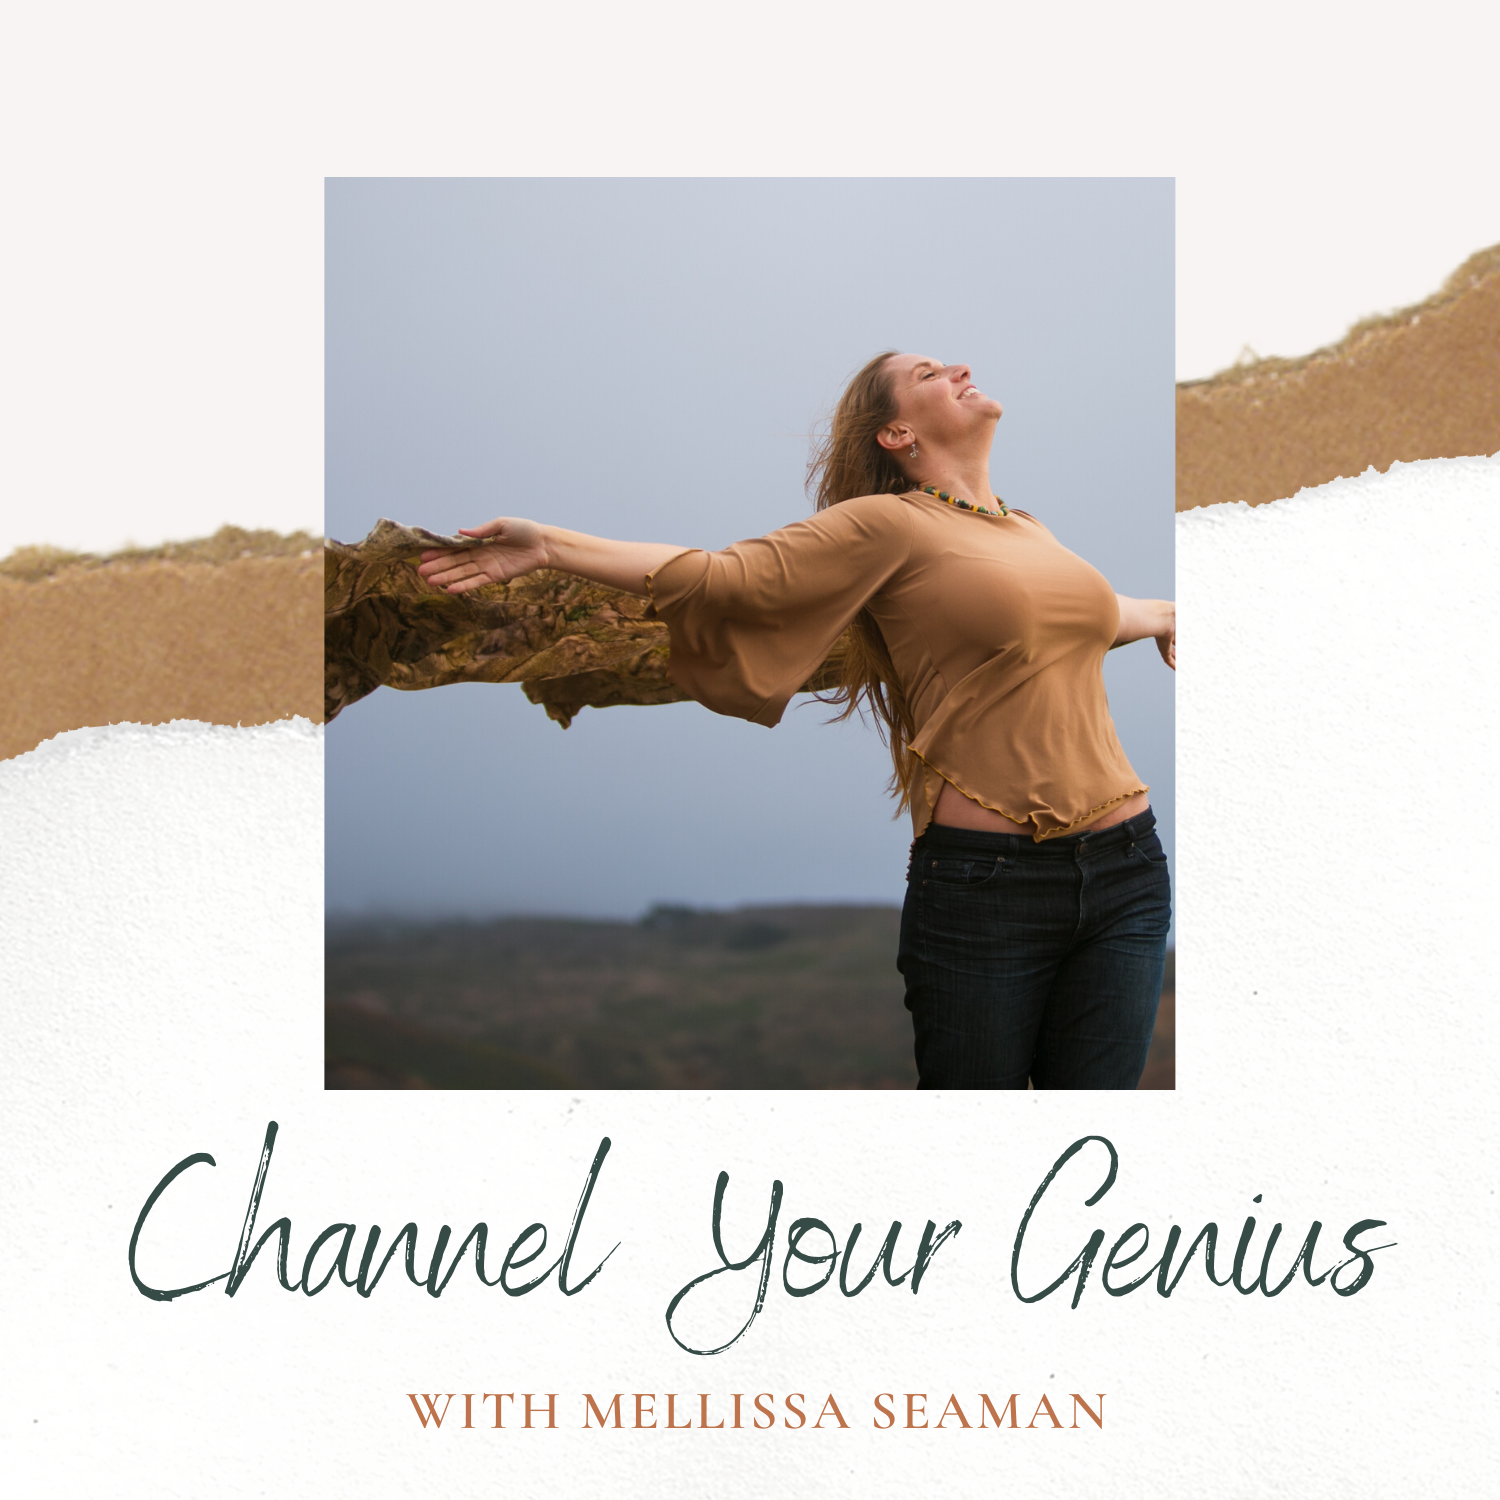 Channel Your Genius Podcast show art